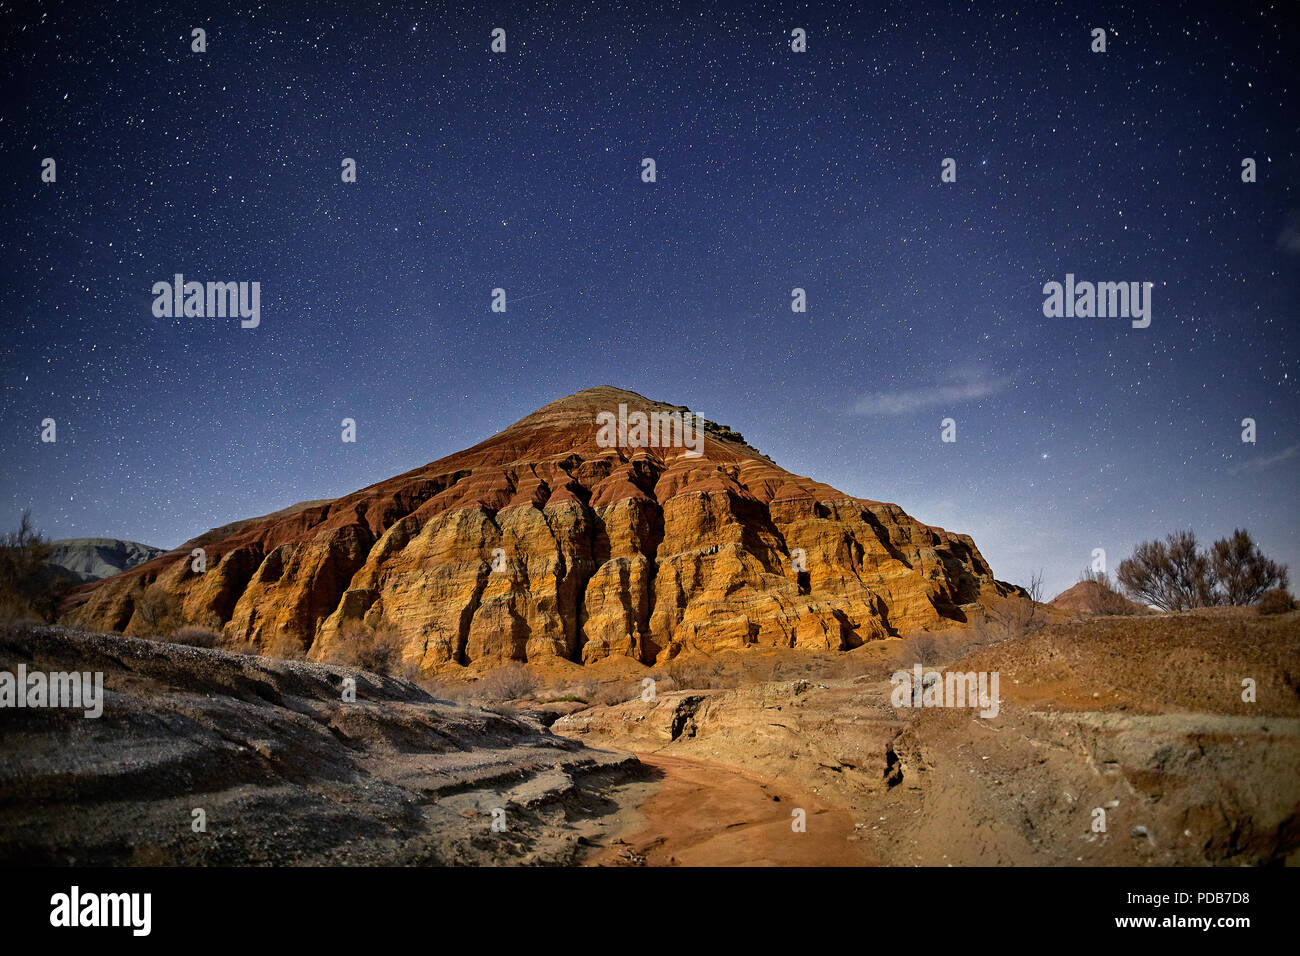 Red mountain of pyramid shape in the desert at night starry sky background. Astronomy photography of space and constellations. - Stock Image